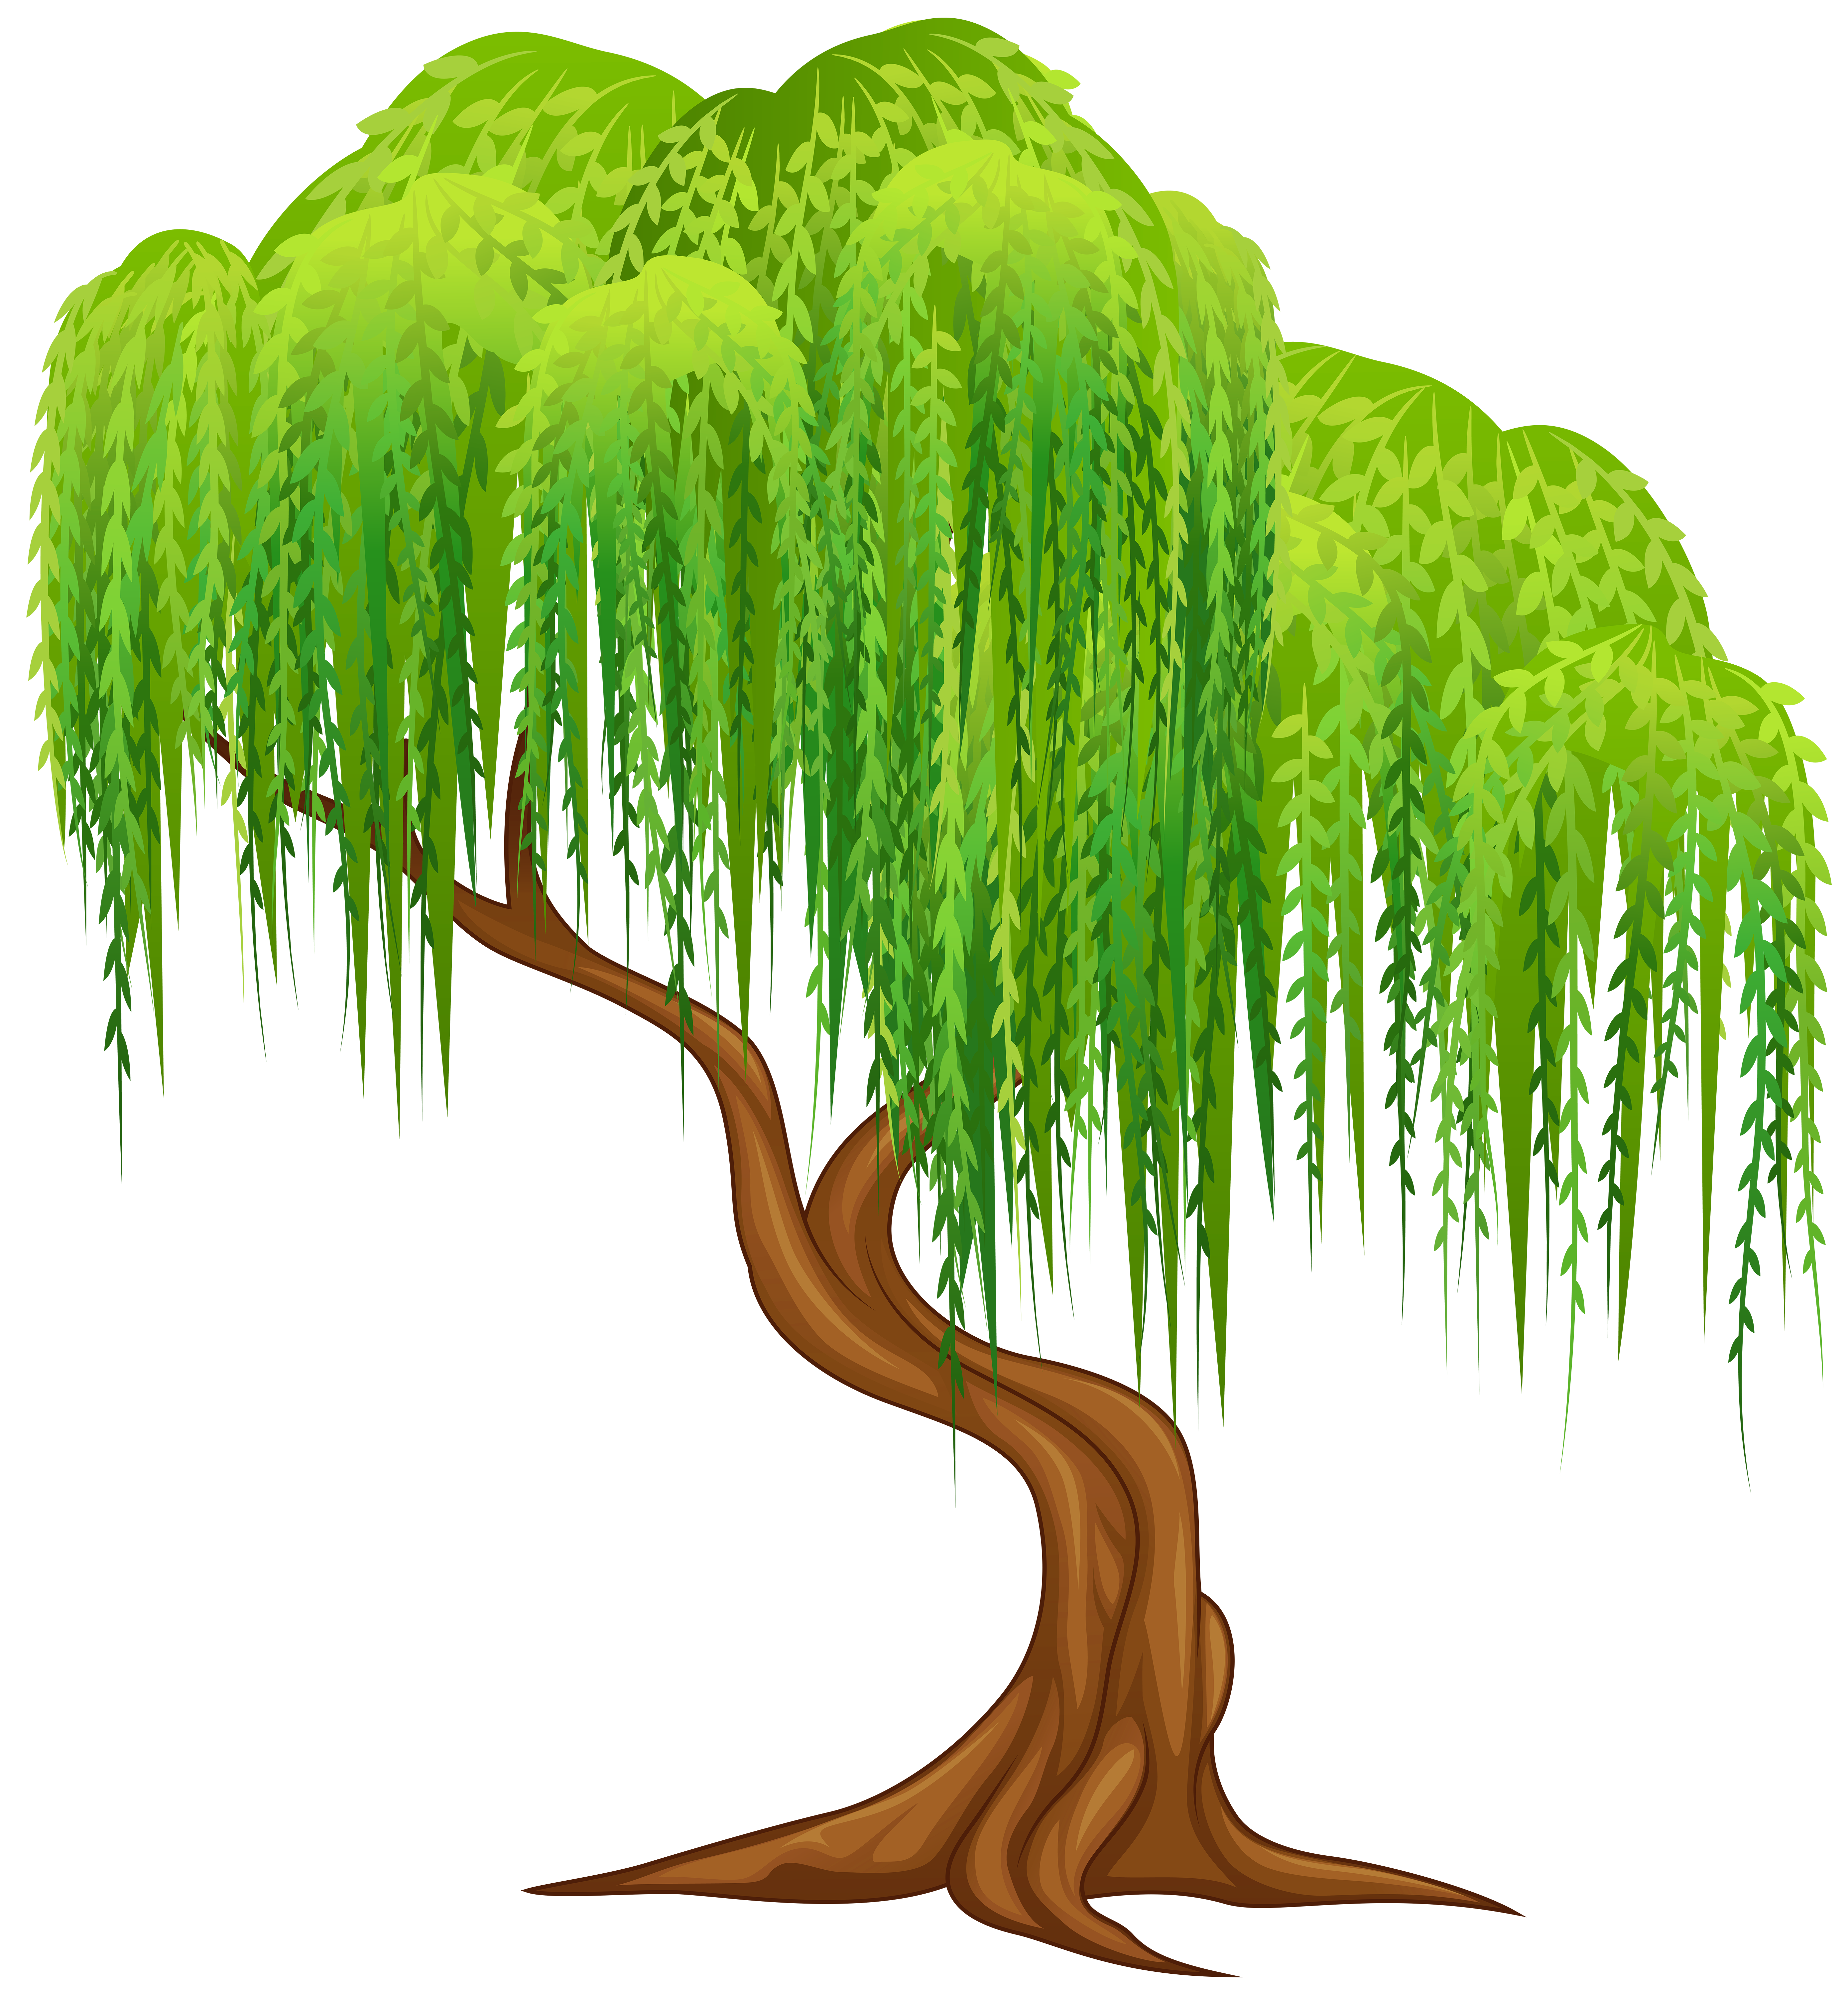 Free vector tree clipart clip art royalty free download Willow Tree Transparent PNG Clip Art Image | Gallery Yopriceville ... clip art royalty free download